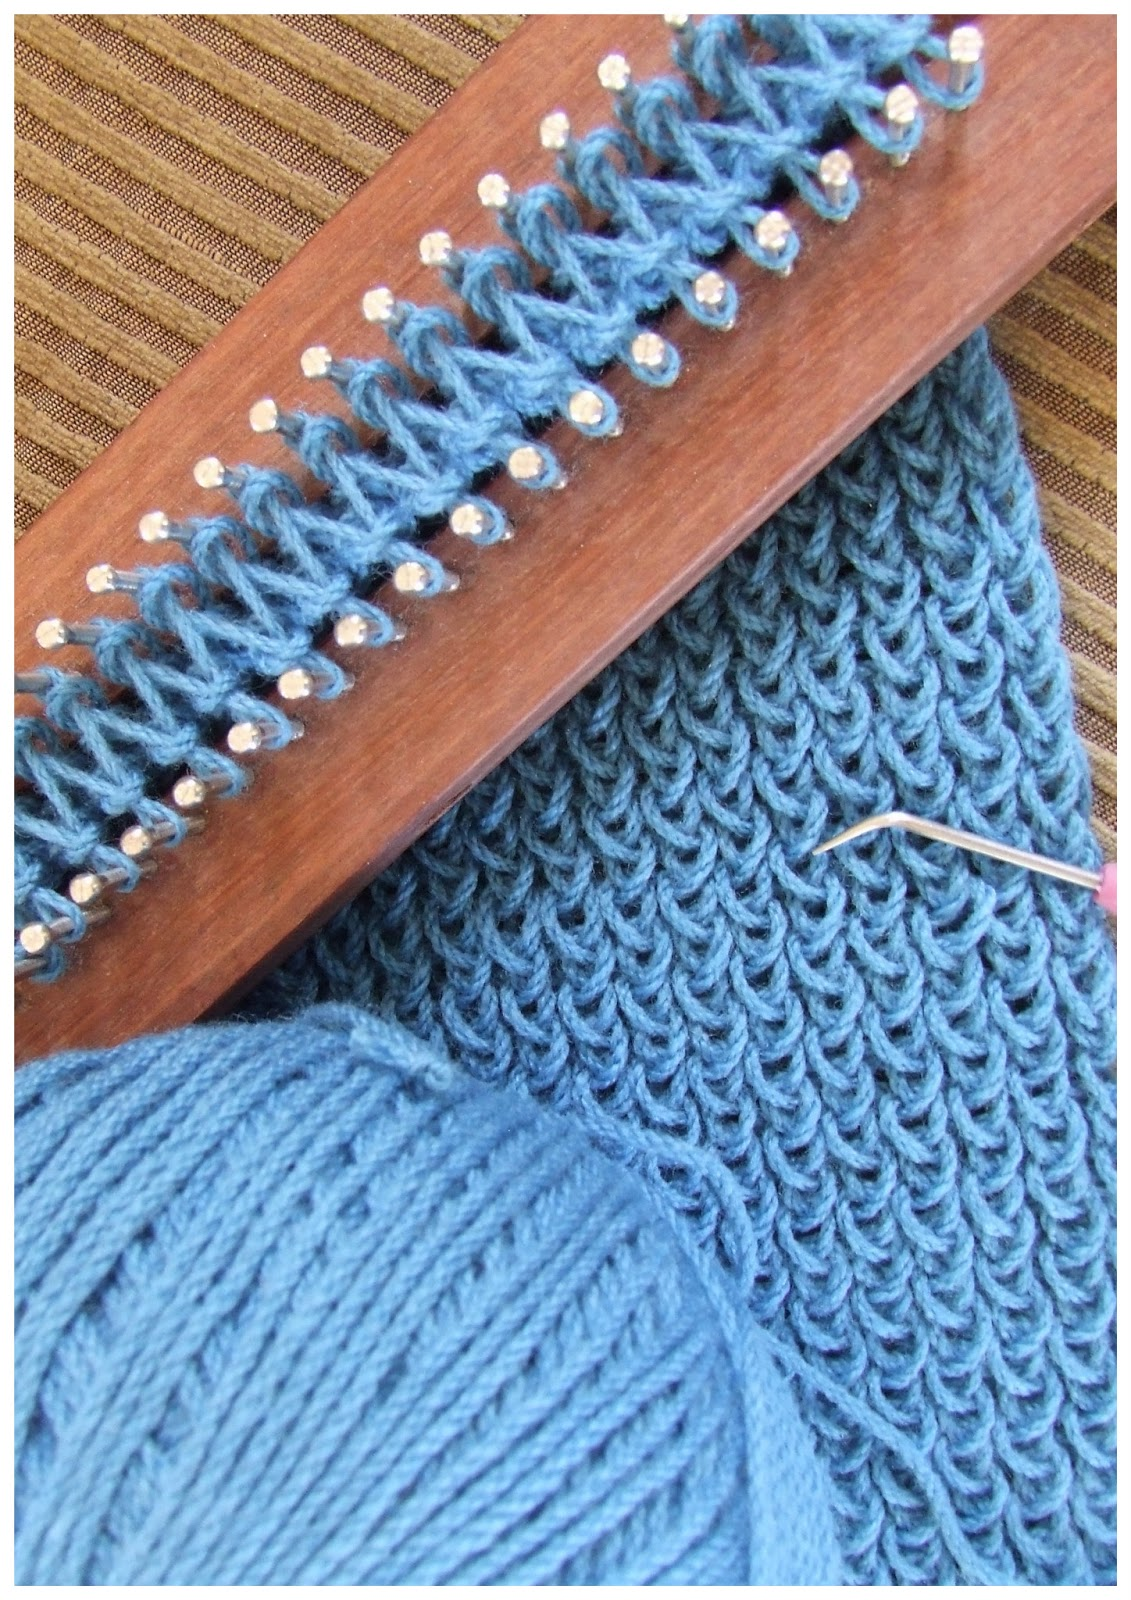 Knitting Loom Patterns : Fitzbirch crafts loom knitting